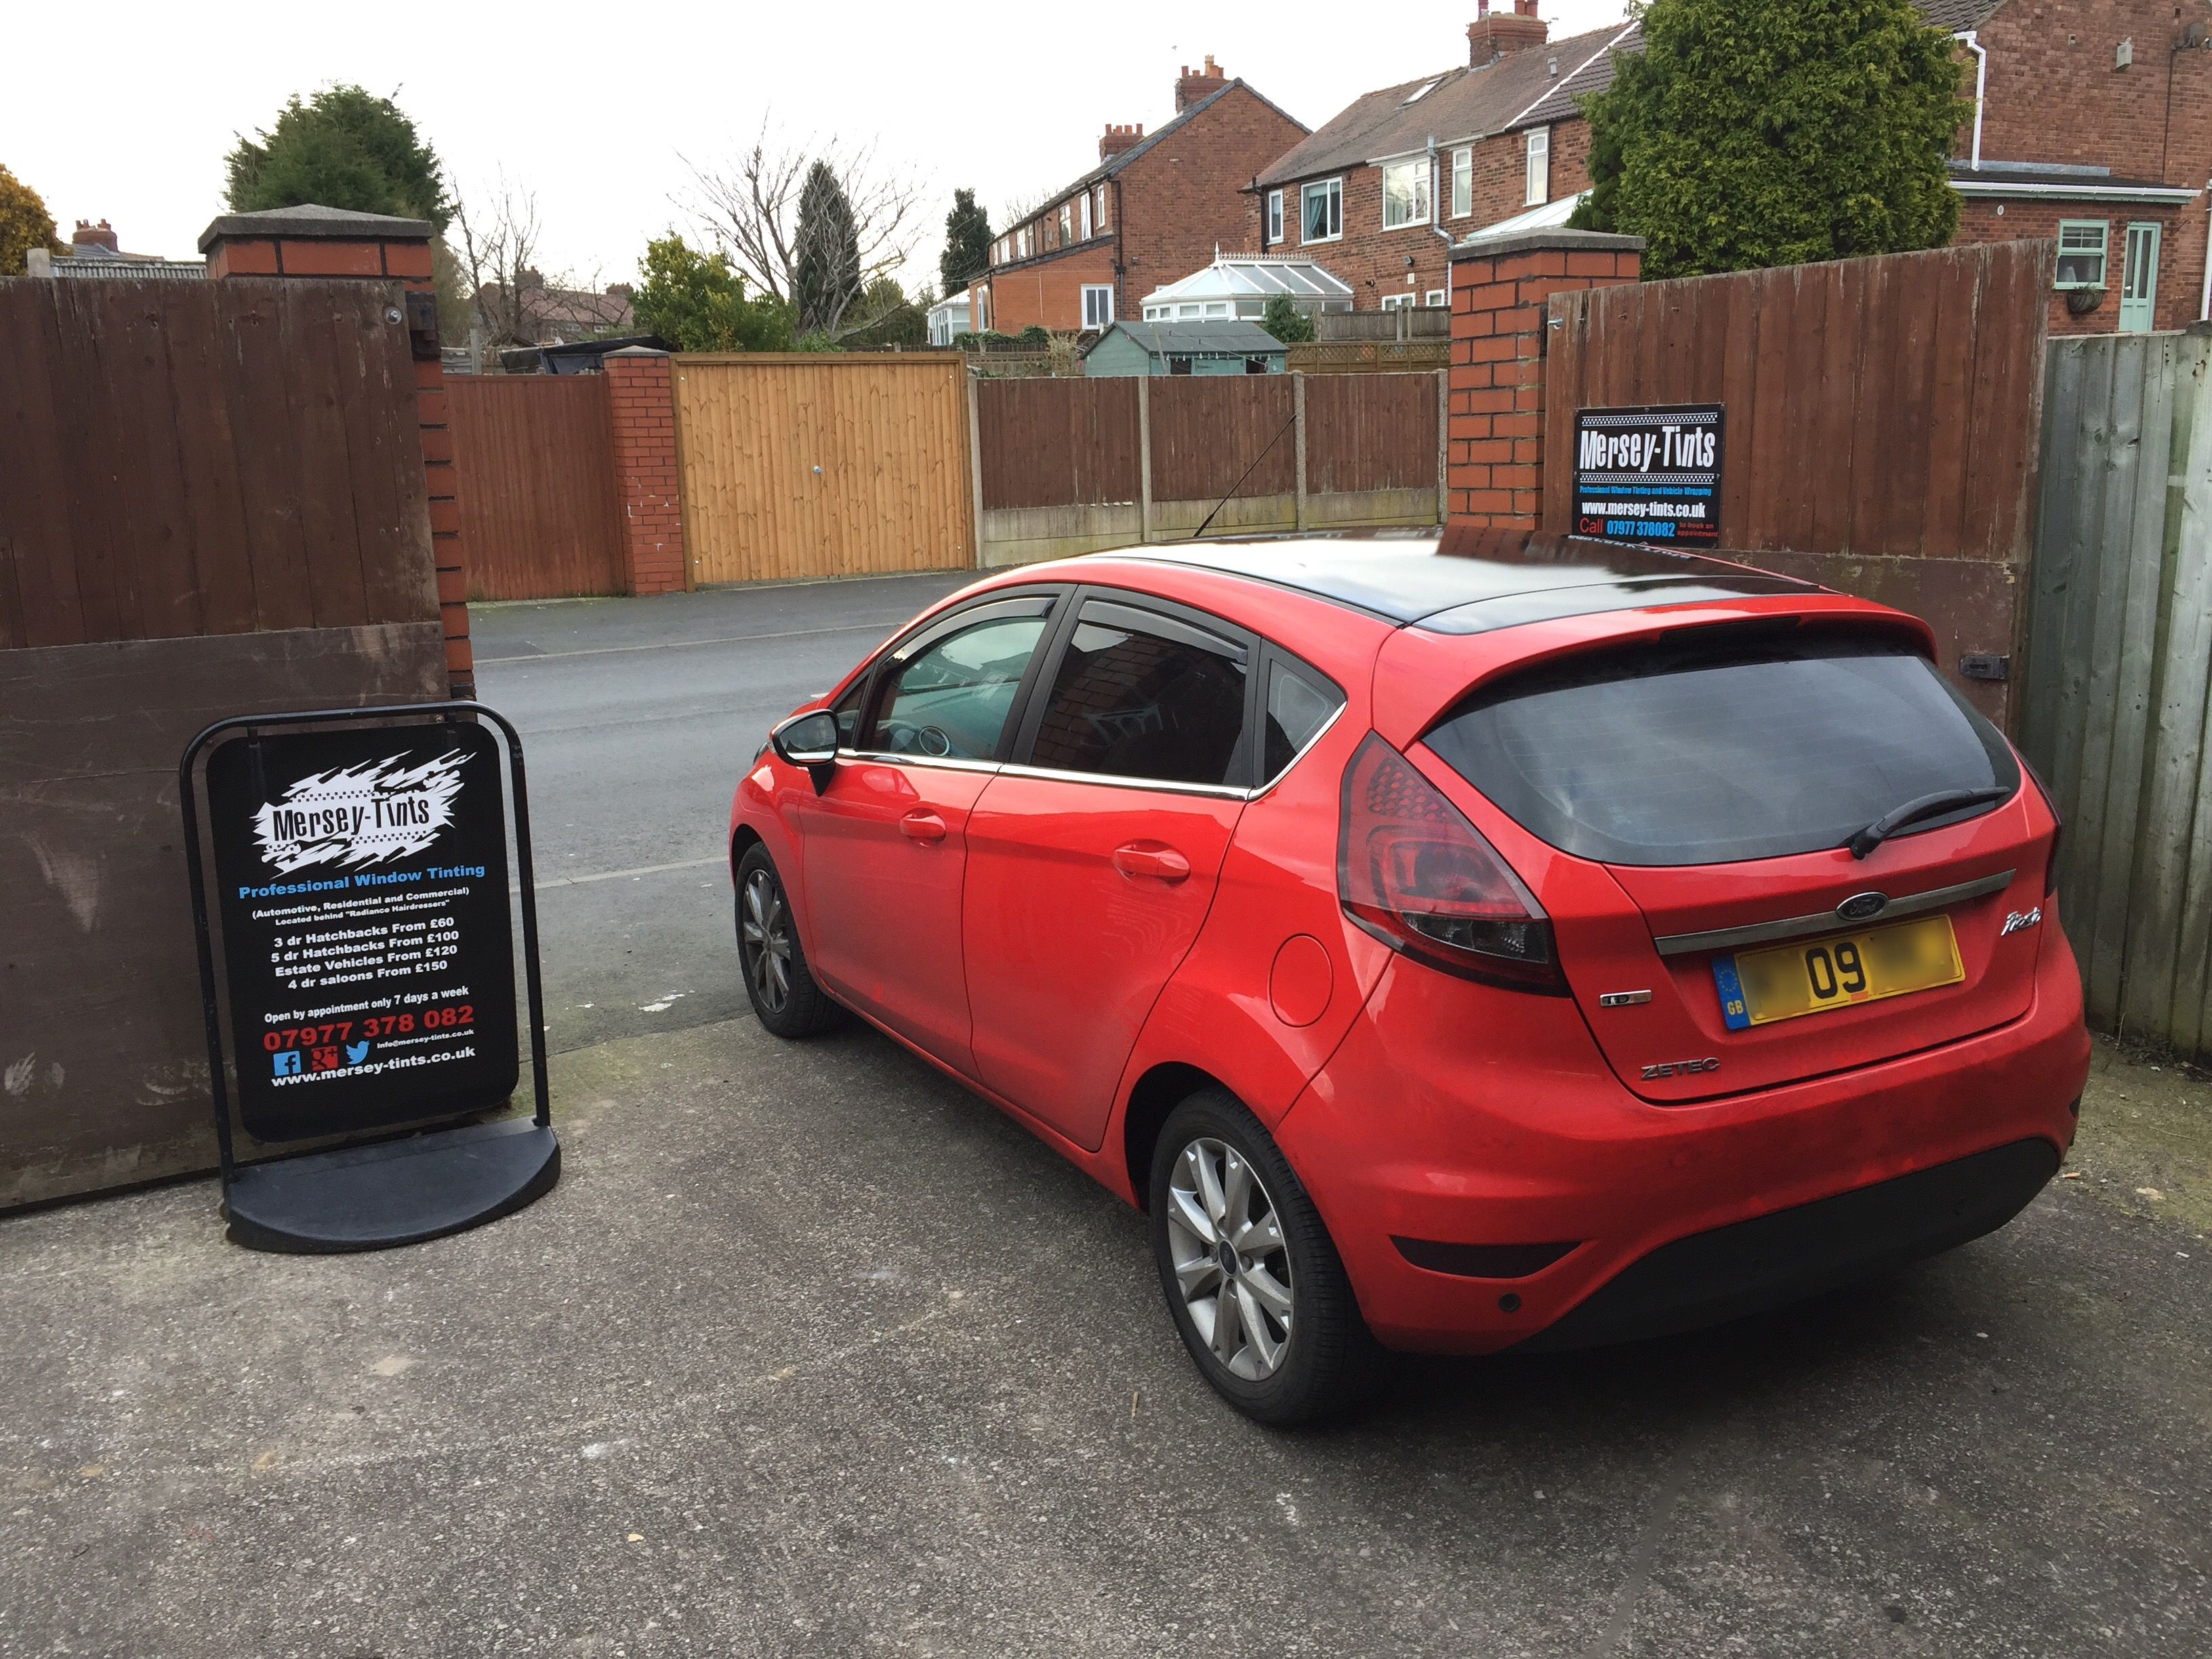 2009 Ford Fiesta back in today for black gloss roof wrap and rear